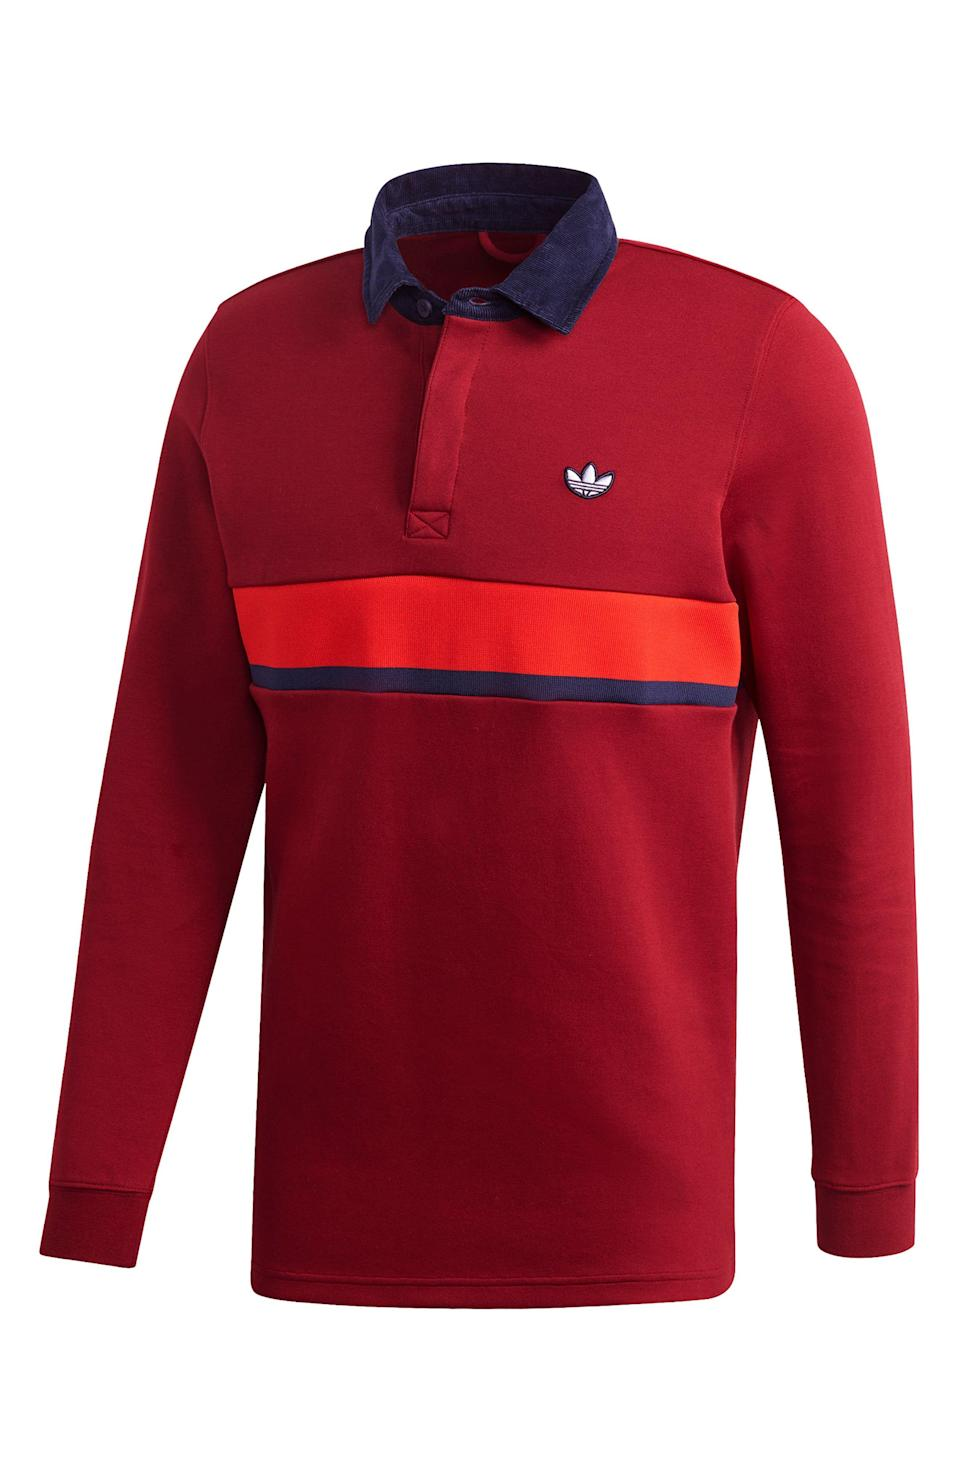 """<p><strong>ADIDAS ORIGINALS</strong></p><p>nordstrom.com</p><p><strong>$70.00</strong></p><p><a href=""""https://go.redirectingat.com?id=74968X1596630&url=https%3A%2F%2Fwww.nordstrom.com%2Fs%2Fadidas-originals-samstag-stripe-rugby-shirt%2F5515356&sref=https%3A%2F%2Fwww.esquire.com%2Fstyle%2Fmens-fashion%2Fg28074063%2Fbest-rugby-shirts%2F"""" rel=""""nofollow noopener"""" target=""""_blank"""" data-ylk=""""slk:Shop Now"""" class=""""link rapid-noclick-resp"""">Shop Now</a></p>"""